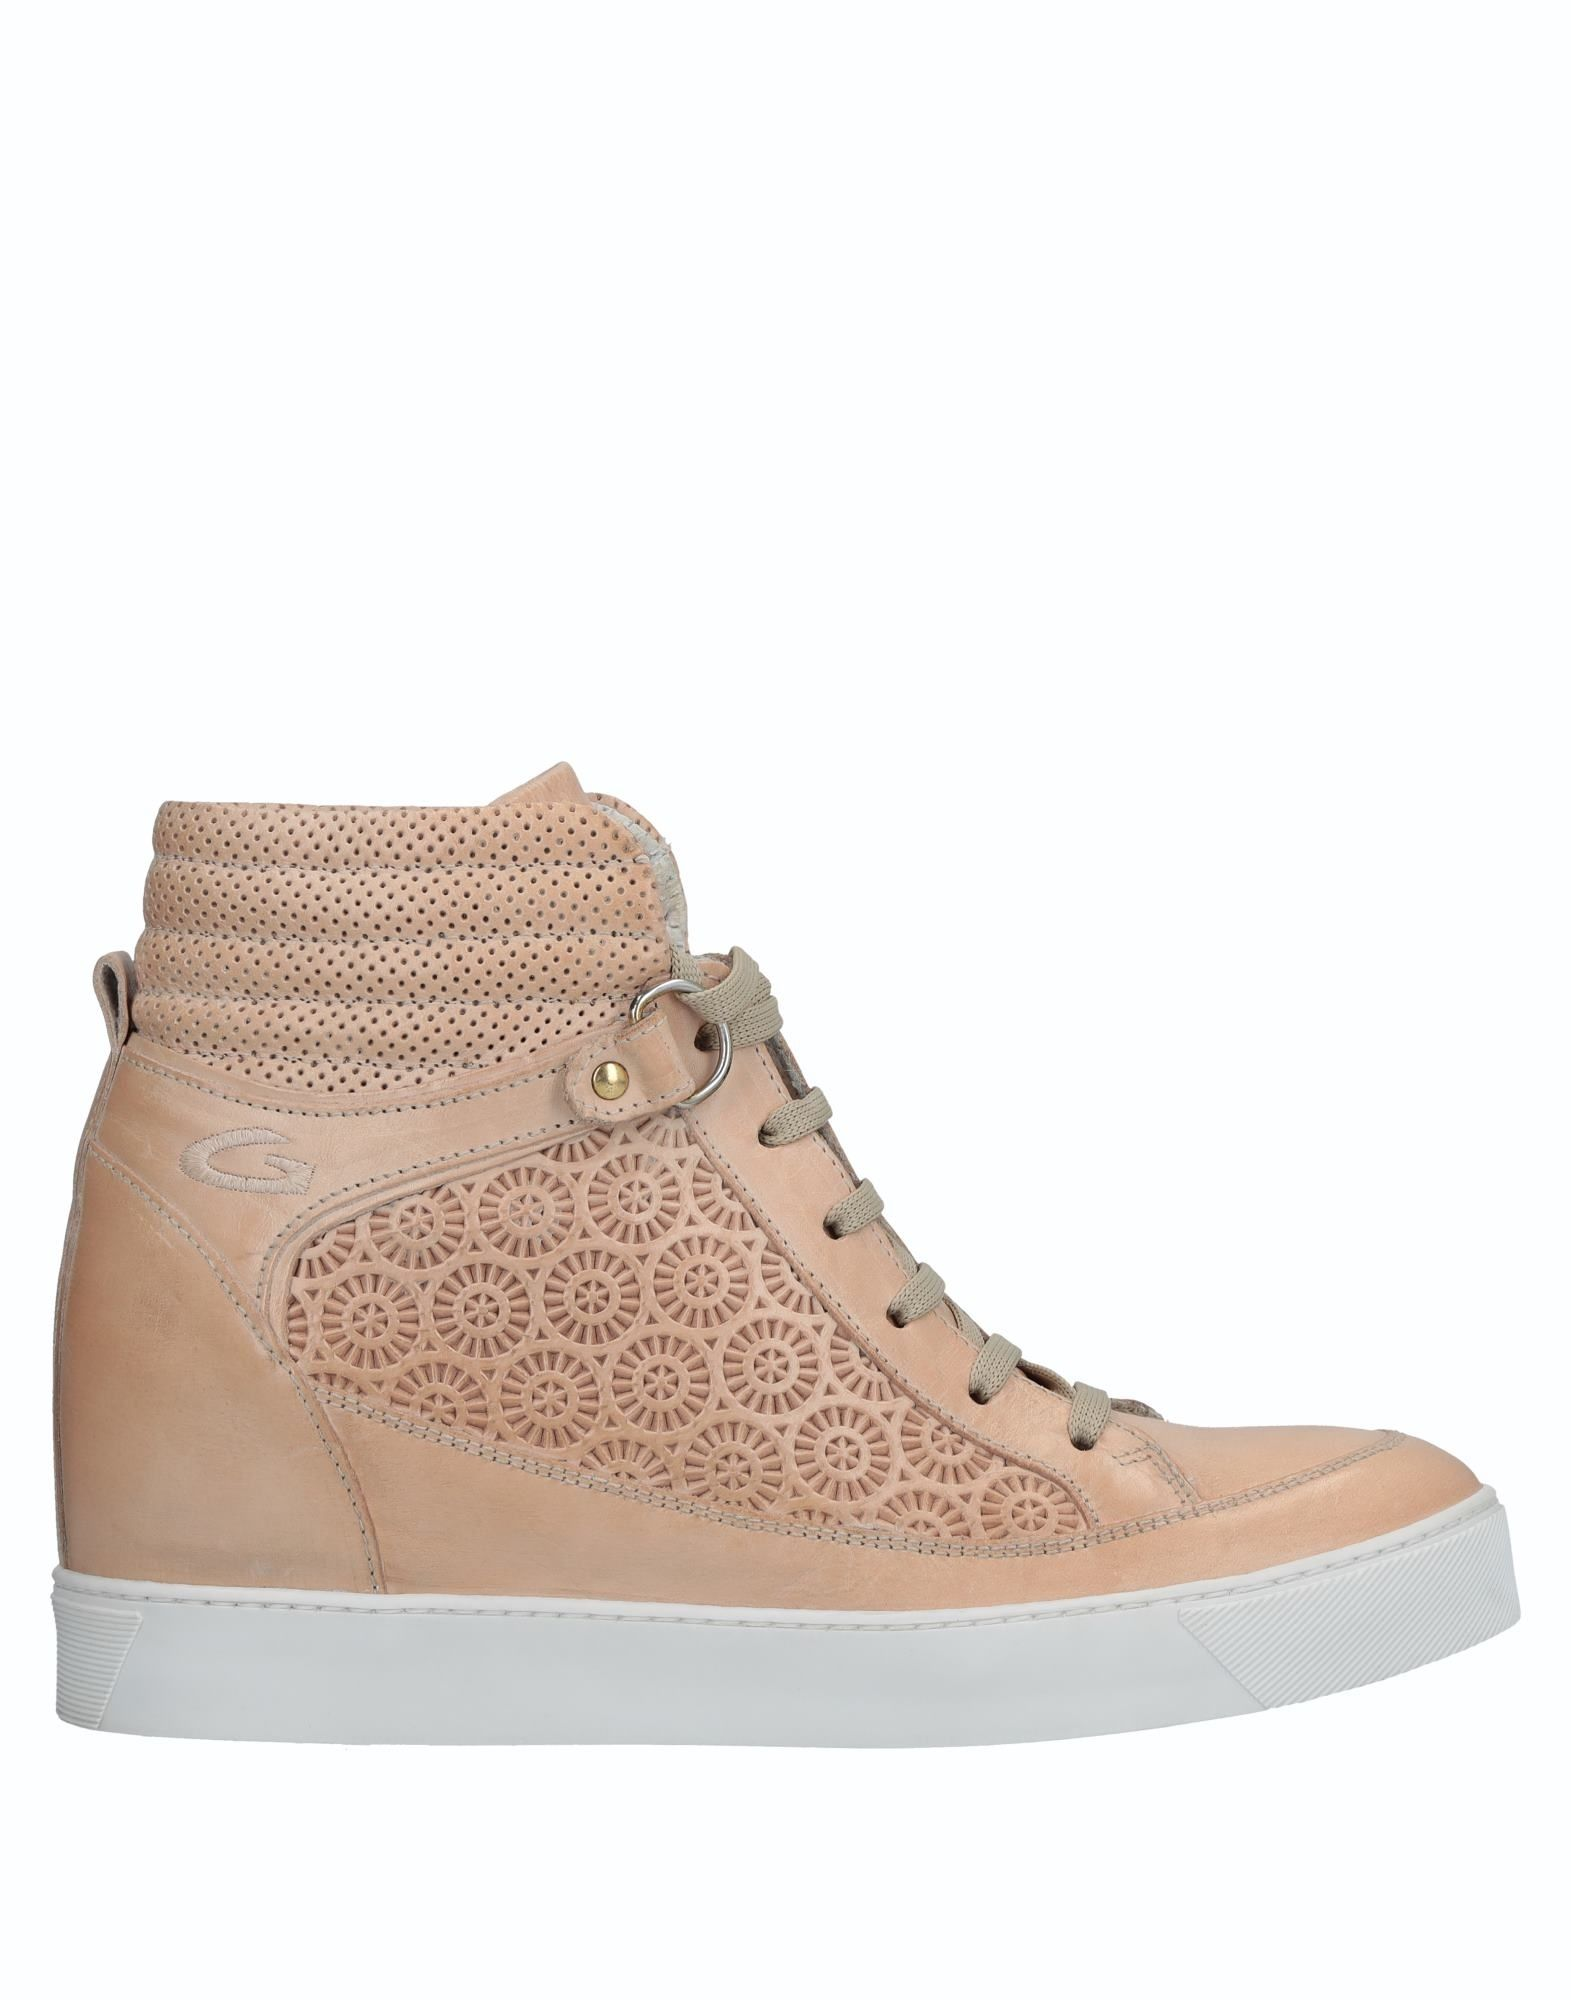 ALBERTO GUARDIANI Sneakers in Sand